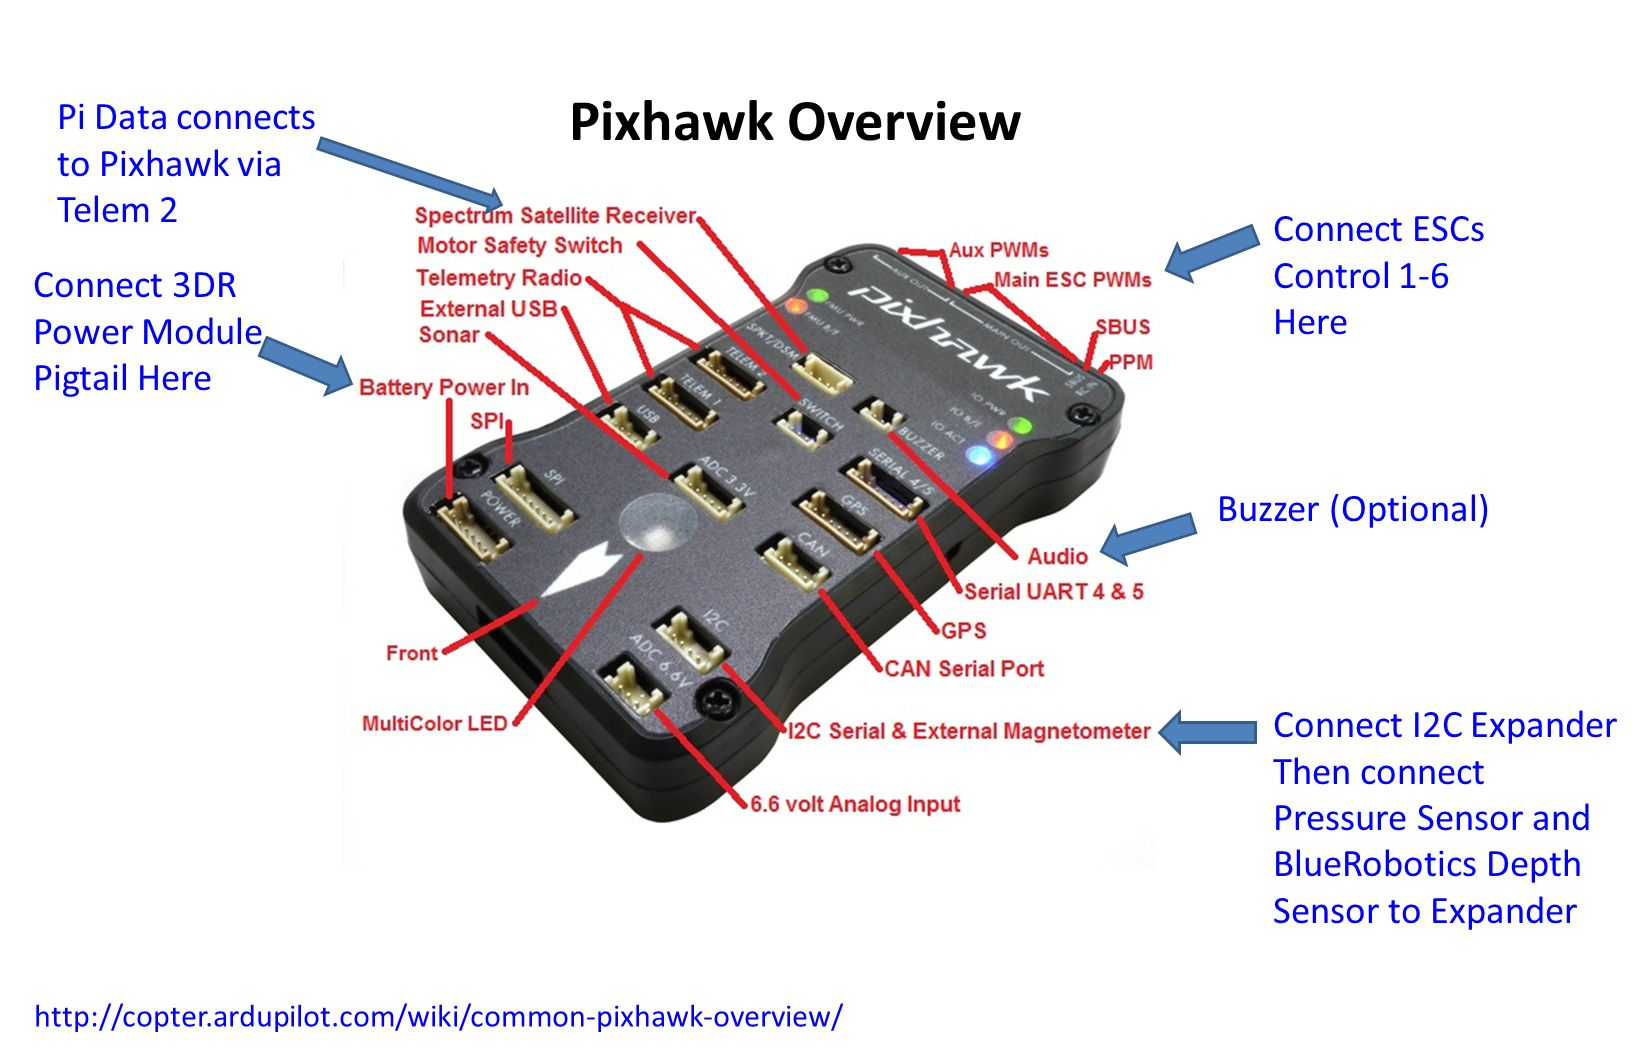 Pixhawk+Overview+Pi+Data+connects+to+Pixhawk+via+Telem+2 bluerov electronics and controls documentation ppt video online Pixhawk Mini Wiring-Diagram at edmiracle.co